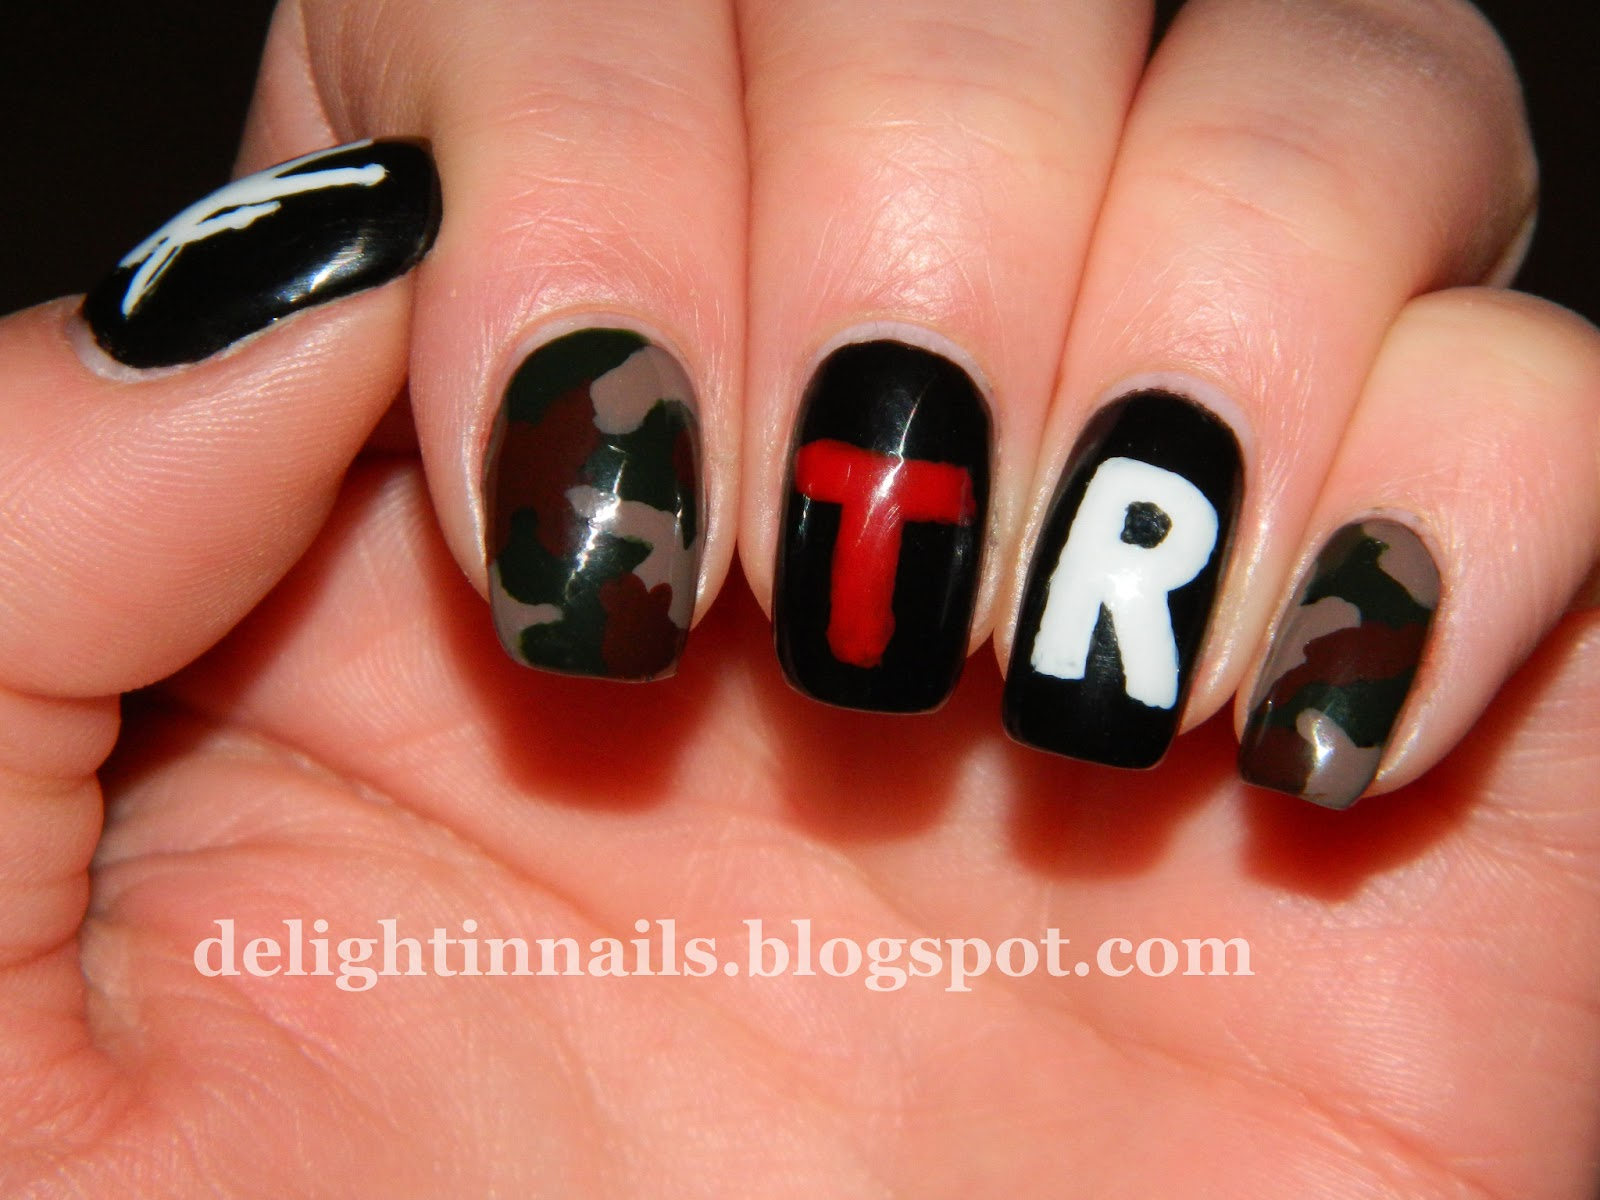 Delight In Nails Tomb Raider Nails